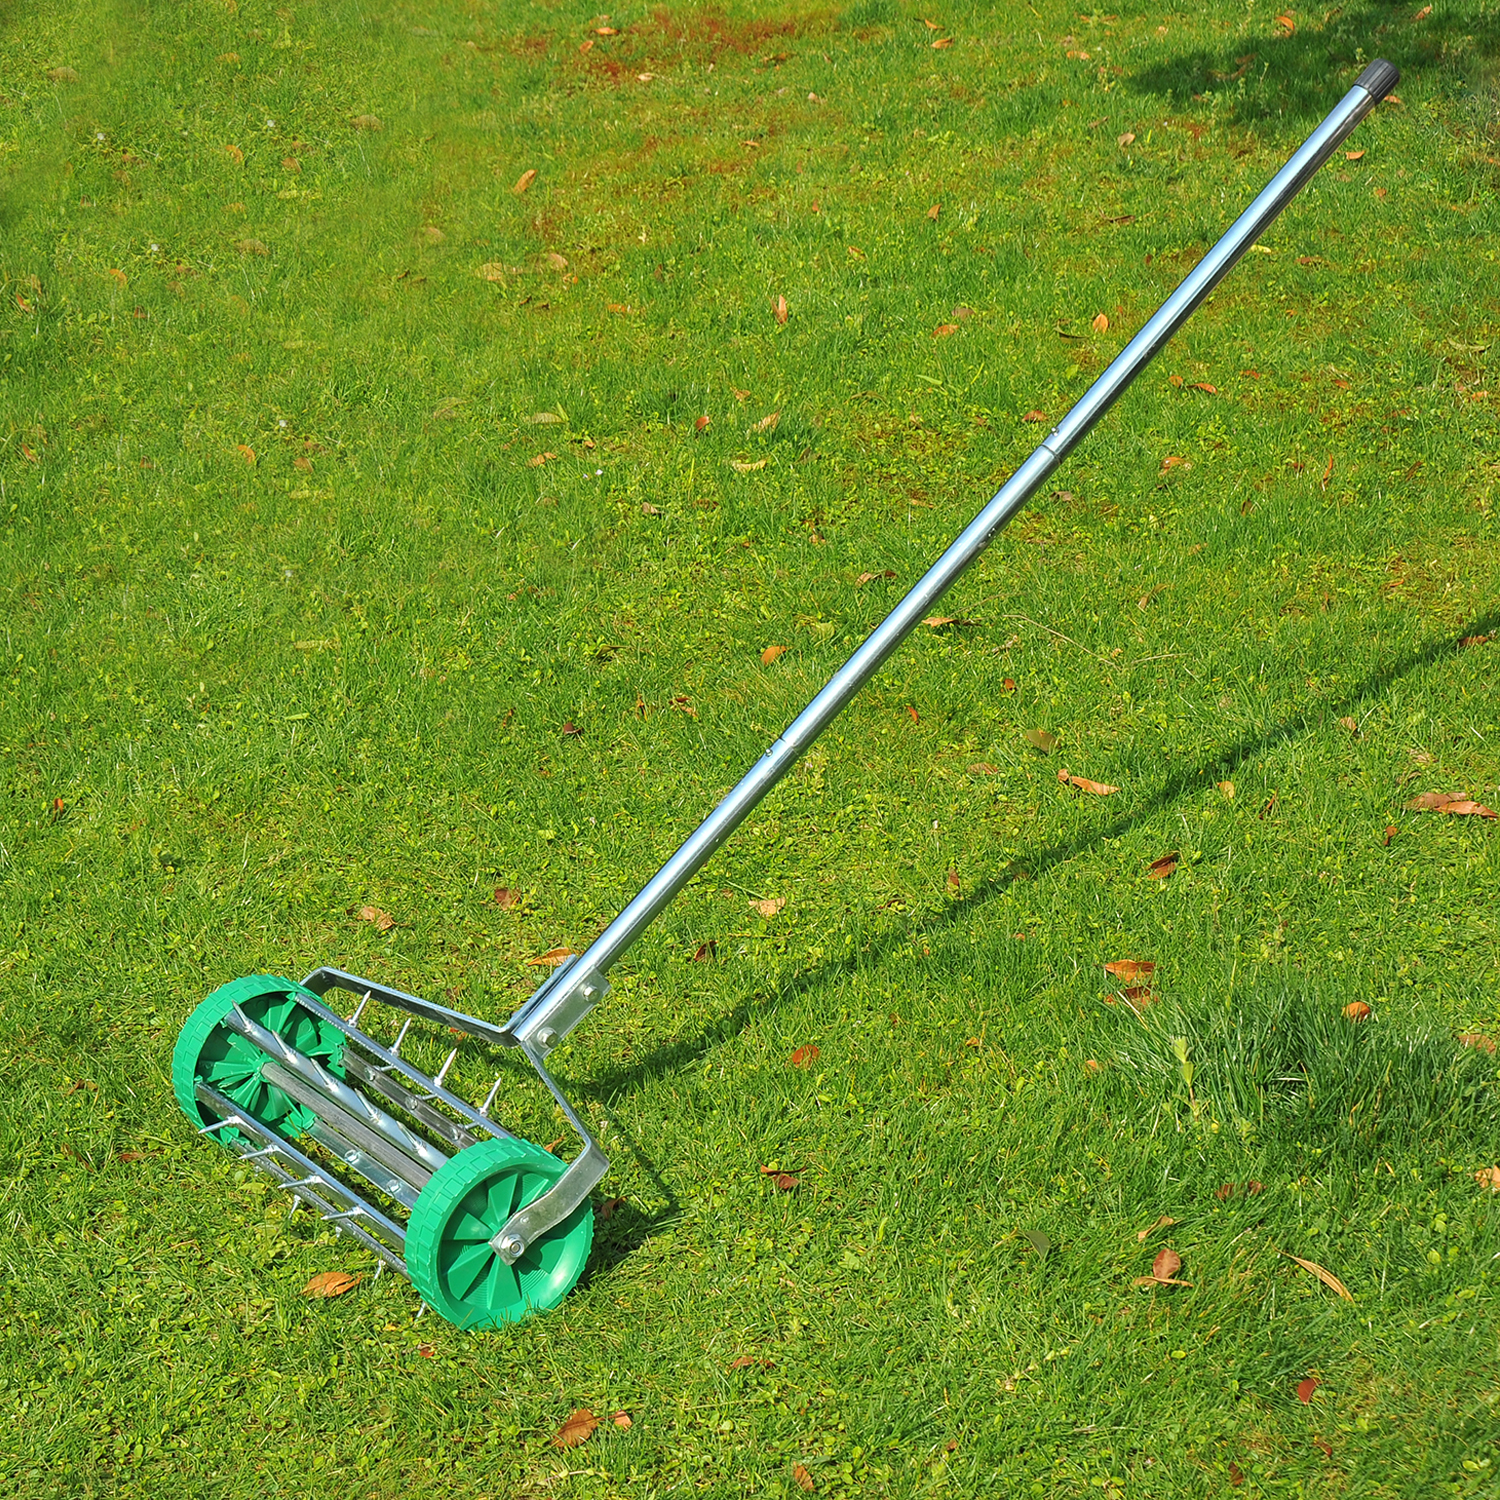 Outsunny Metal 5 Spike Lawn Aerator Roller Green